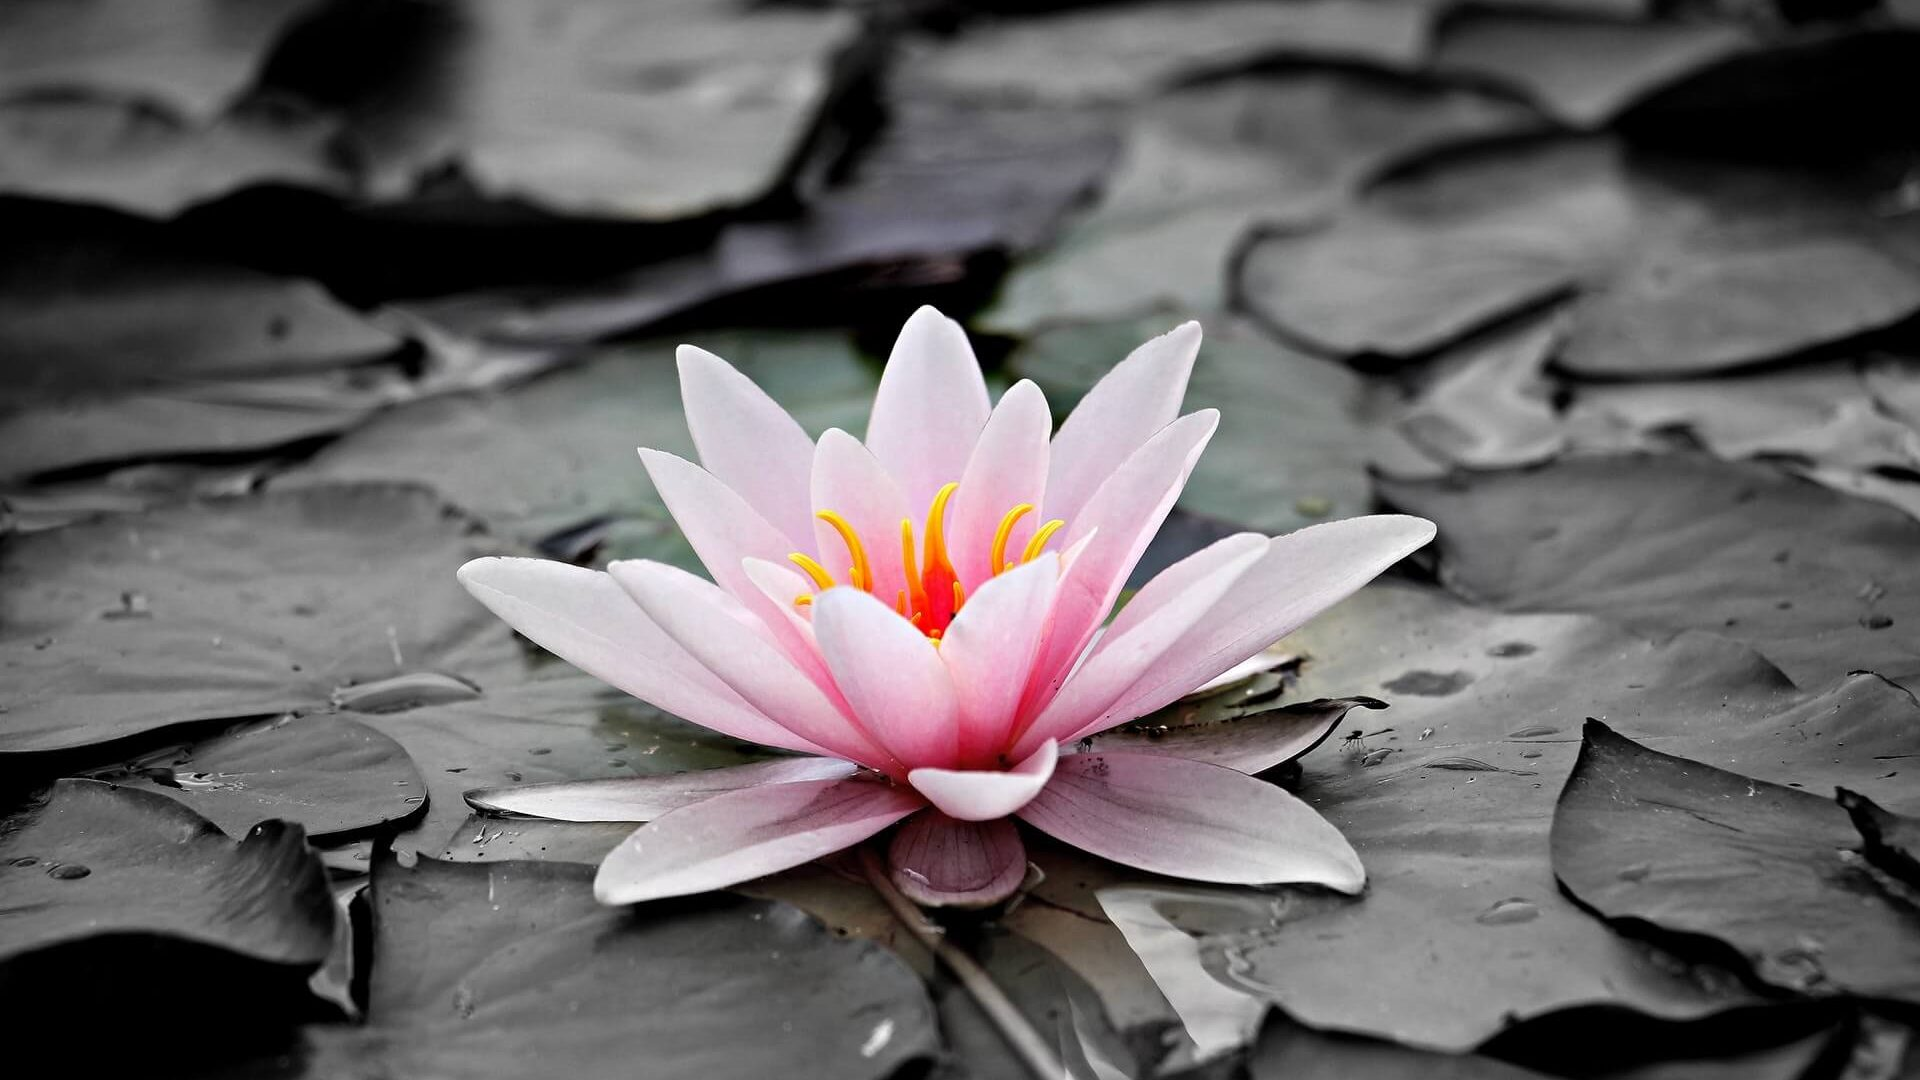 pink and white lotus floer hd wallpaper 1920x1080 - Tendencias Diseño Gráfico 2019